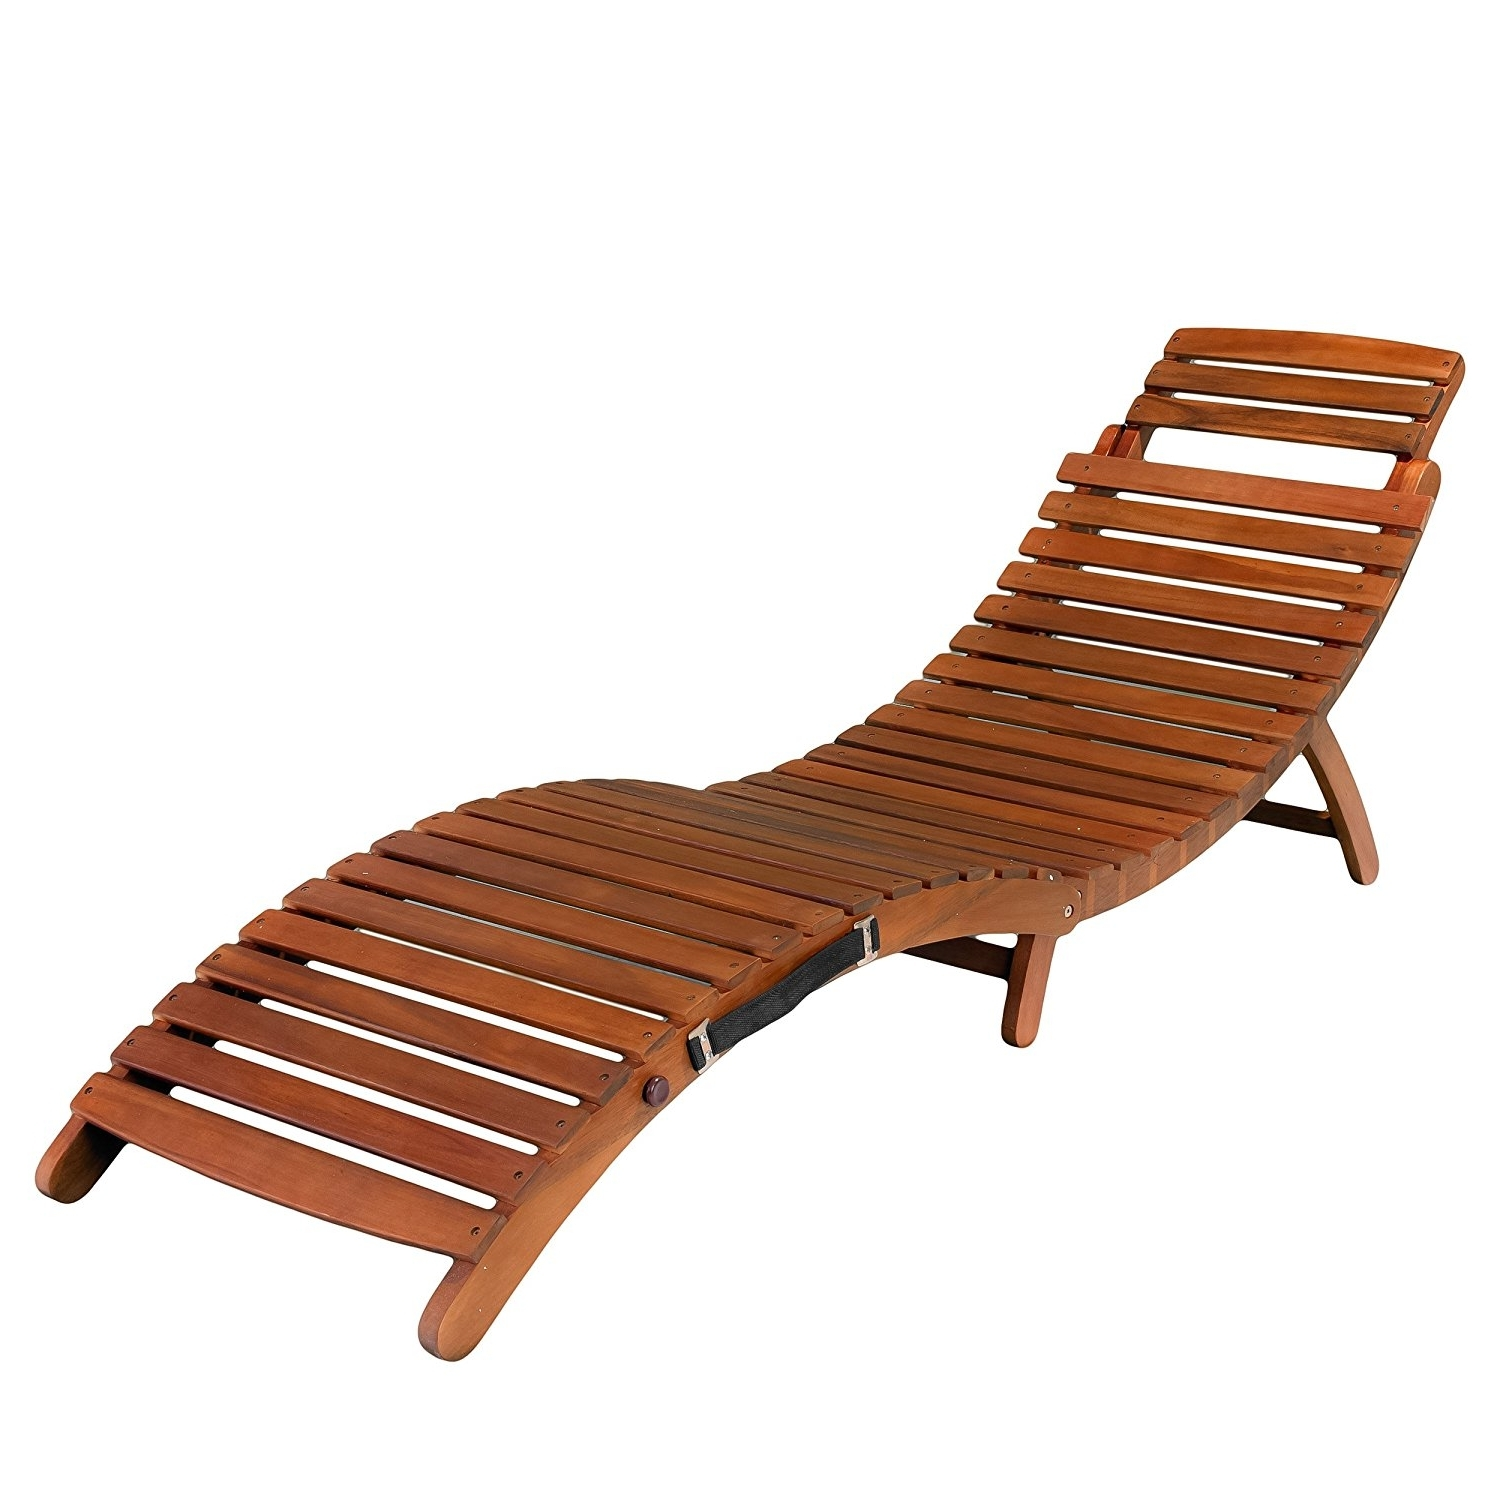 Amazon: Best Selling Del Rio Wood Outdoor Chaise Lounge Intended For 2017 Teak Chaise Lounges (View 3 of 15)